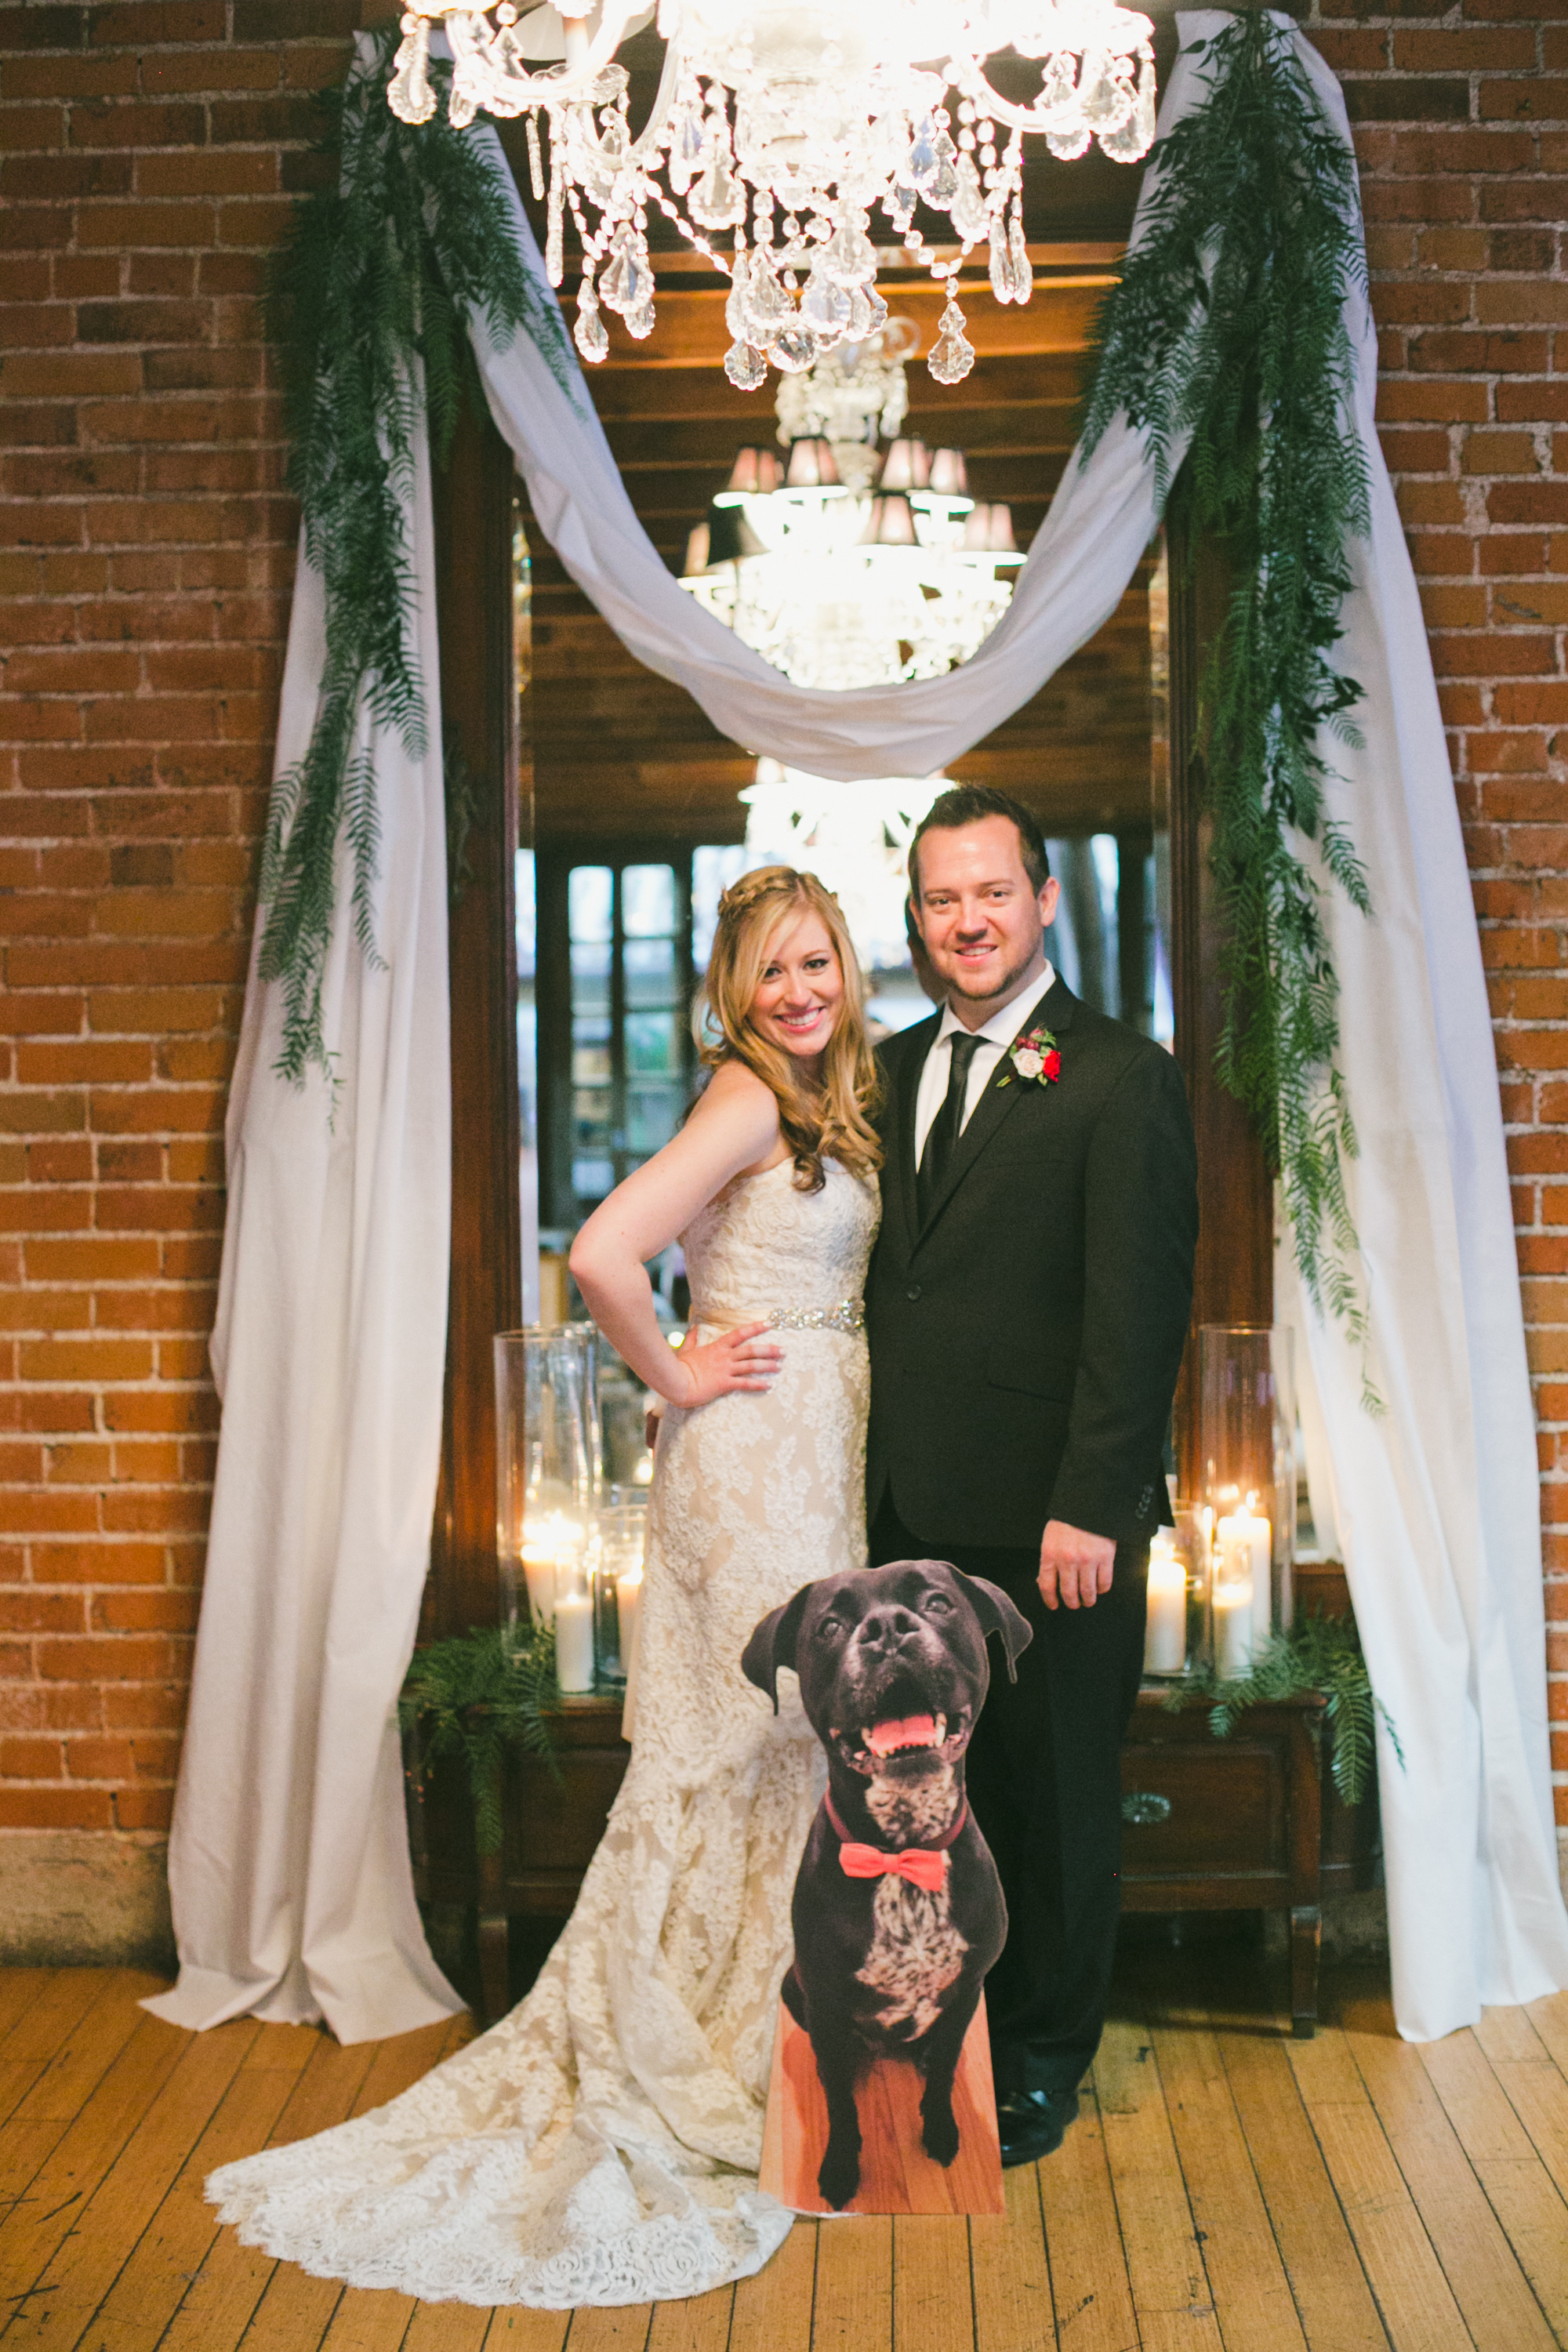 035 brid + groom + dog.JPG